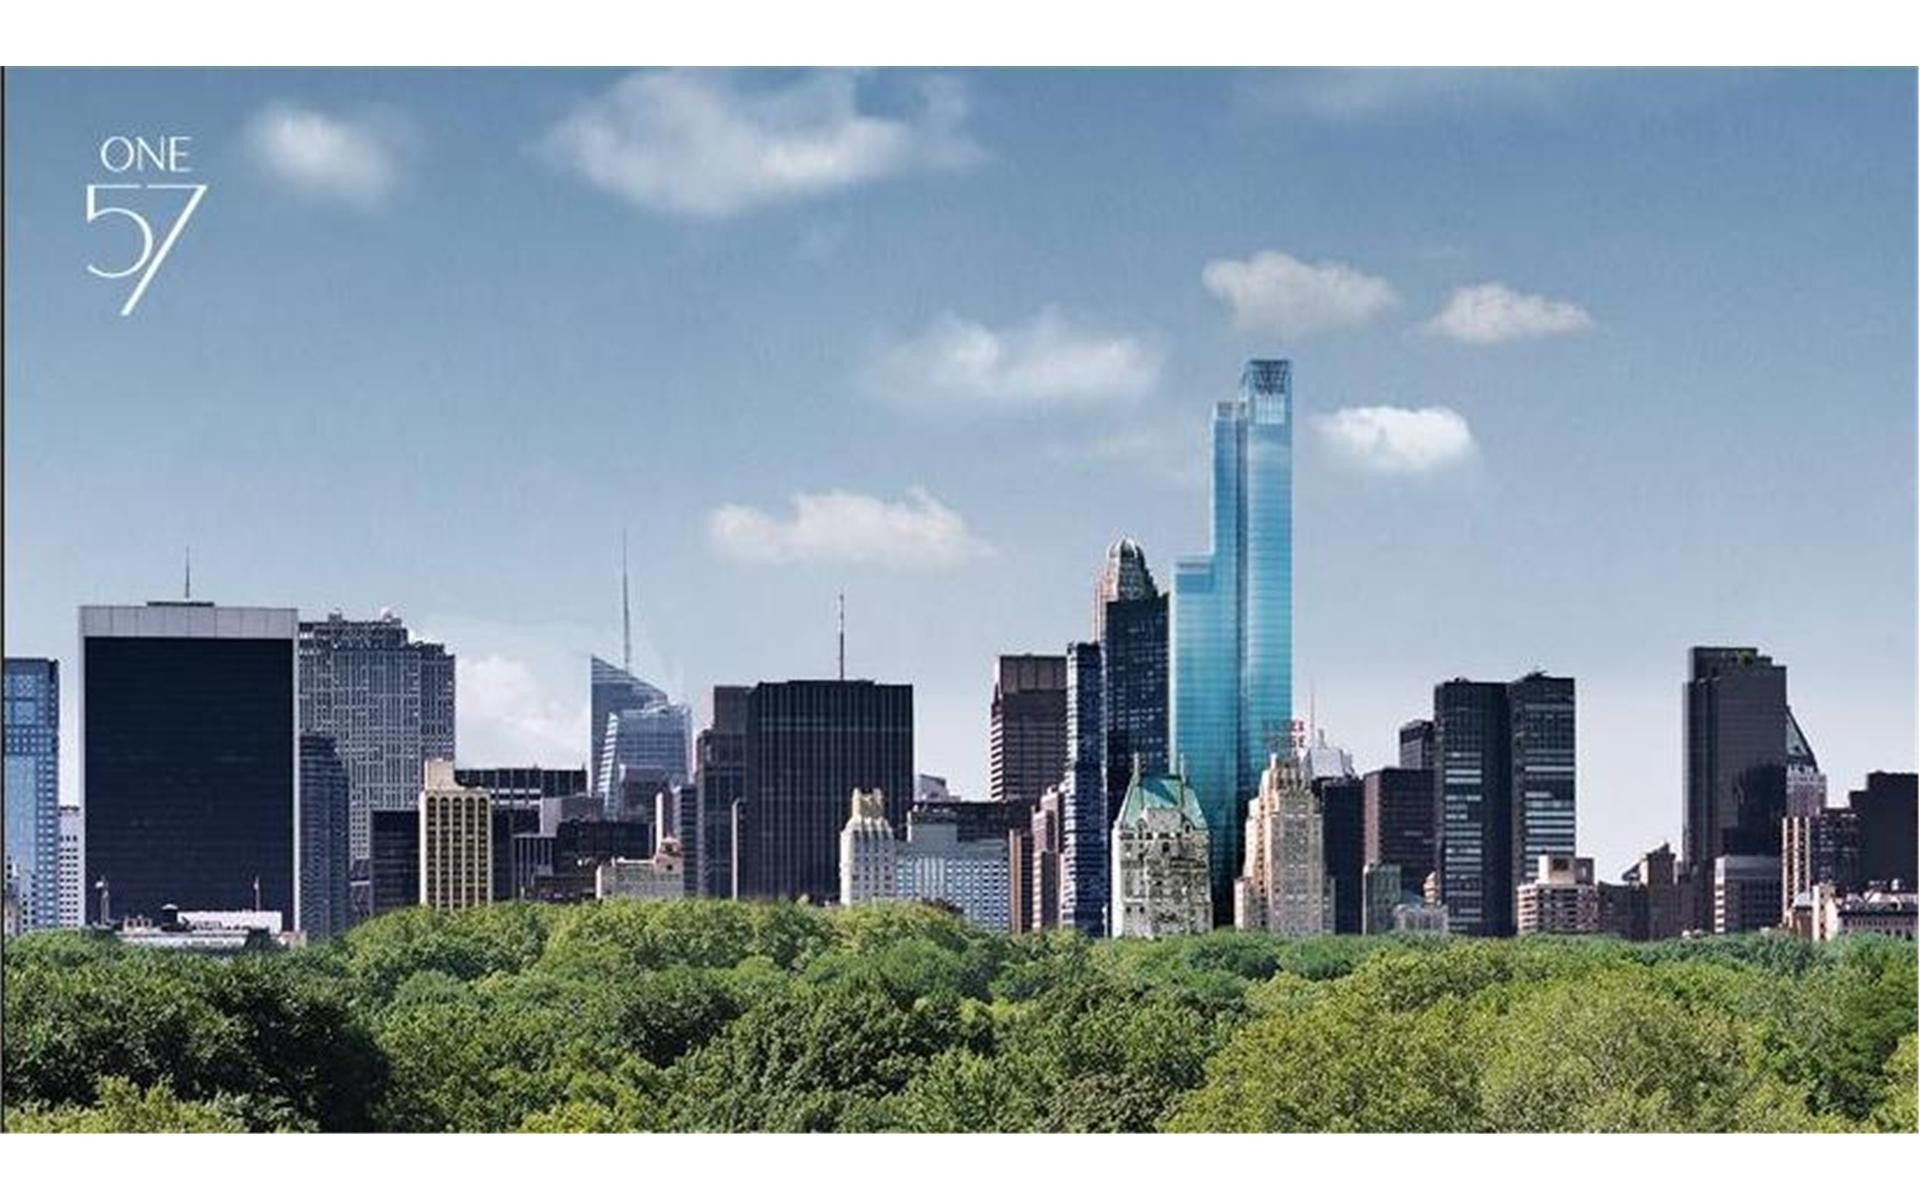 5. Condominiums for Sale at One57, 157 West 57th St, 41A Midtown West, New York, NY 10019